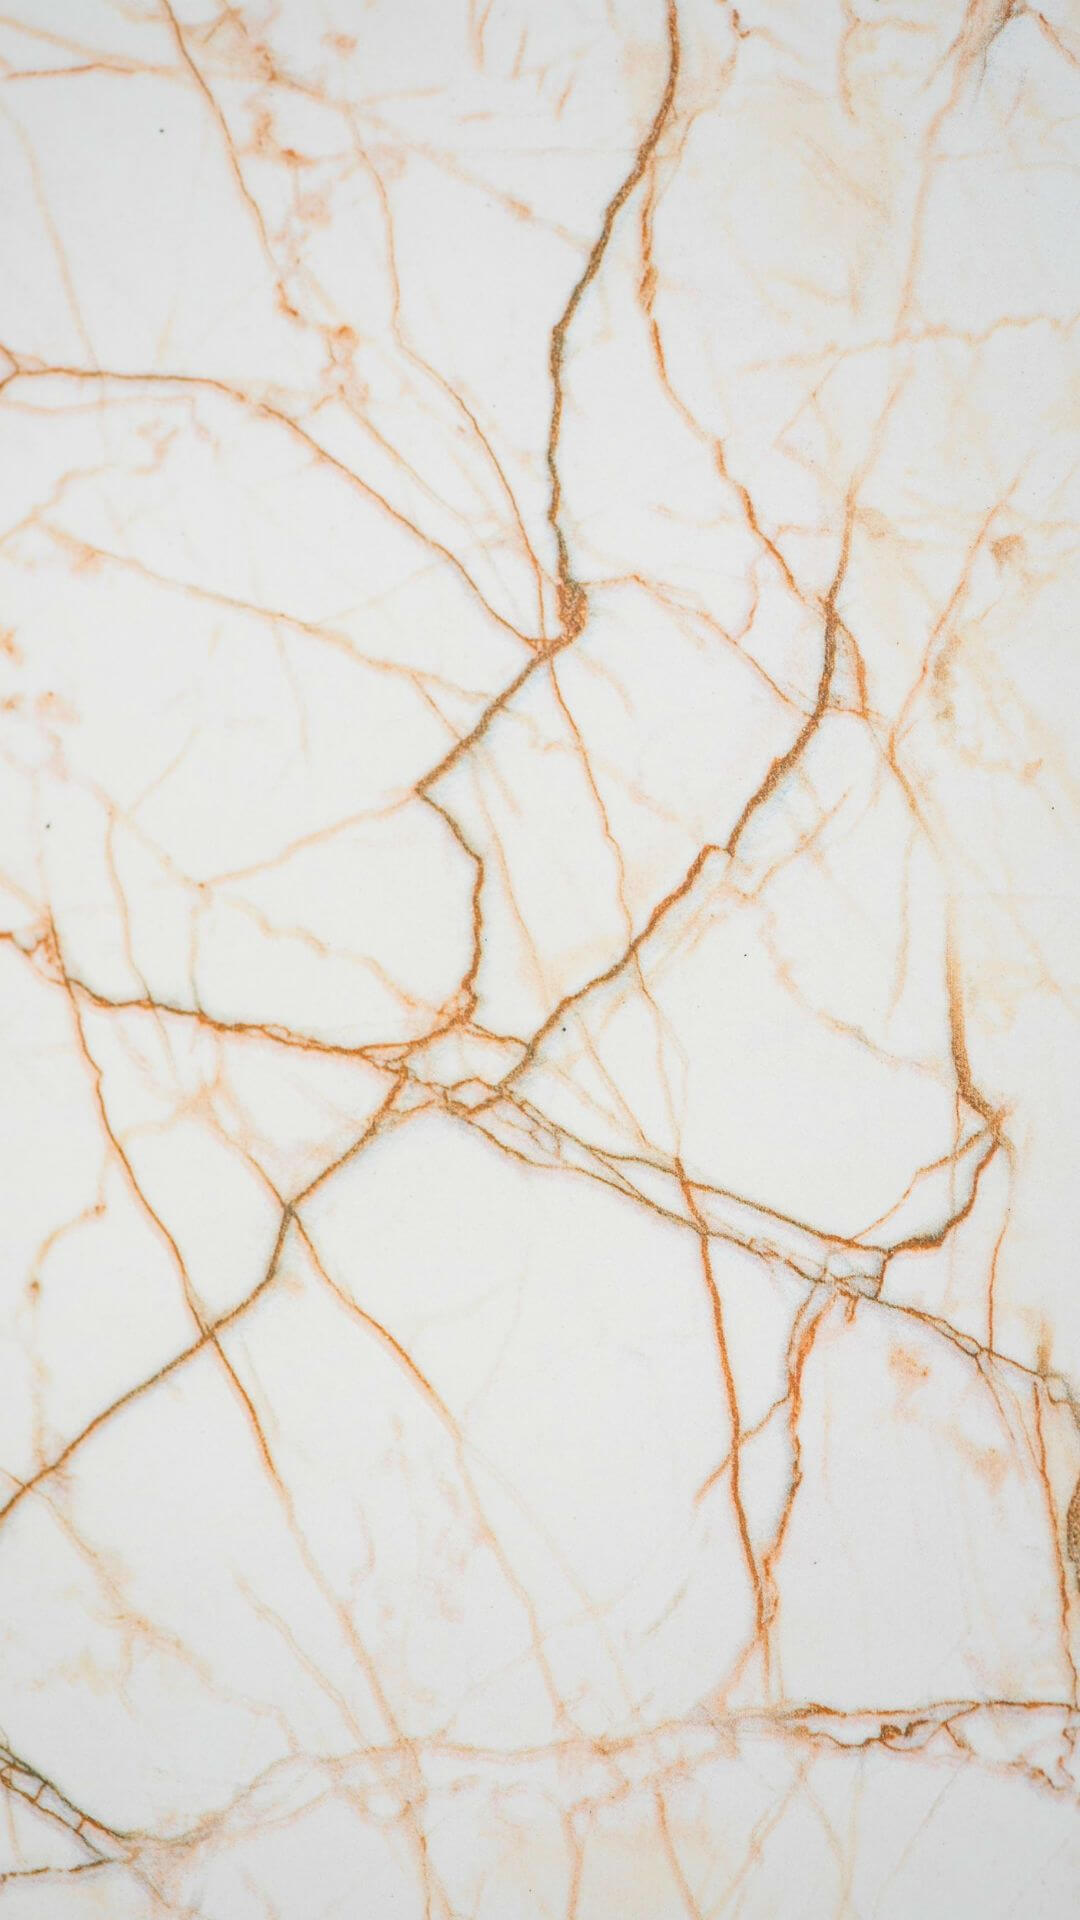 marble wallpaper oneplus 8 8t a90 wallpapers 45 2940000001 1080x1920